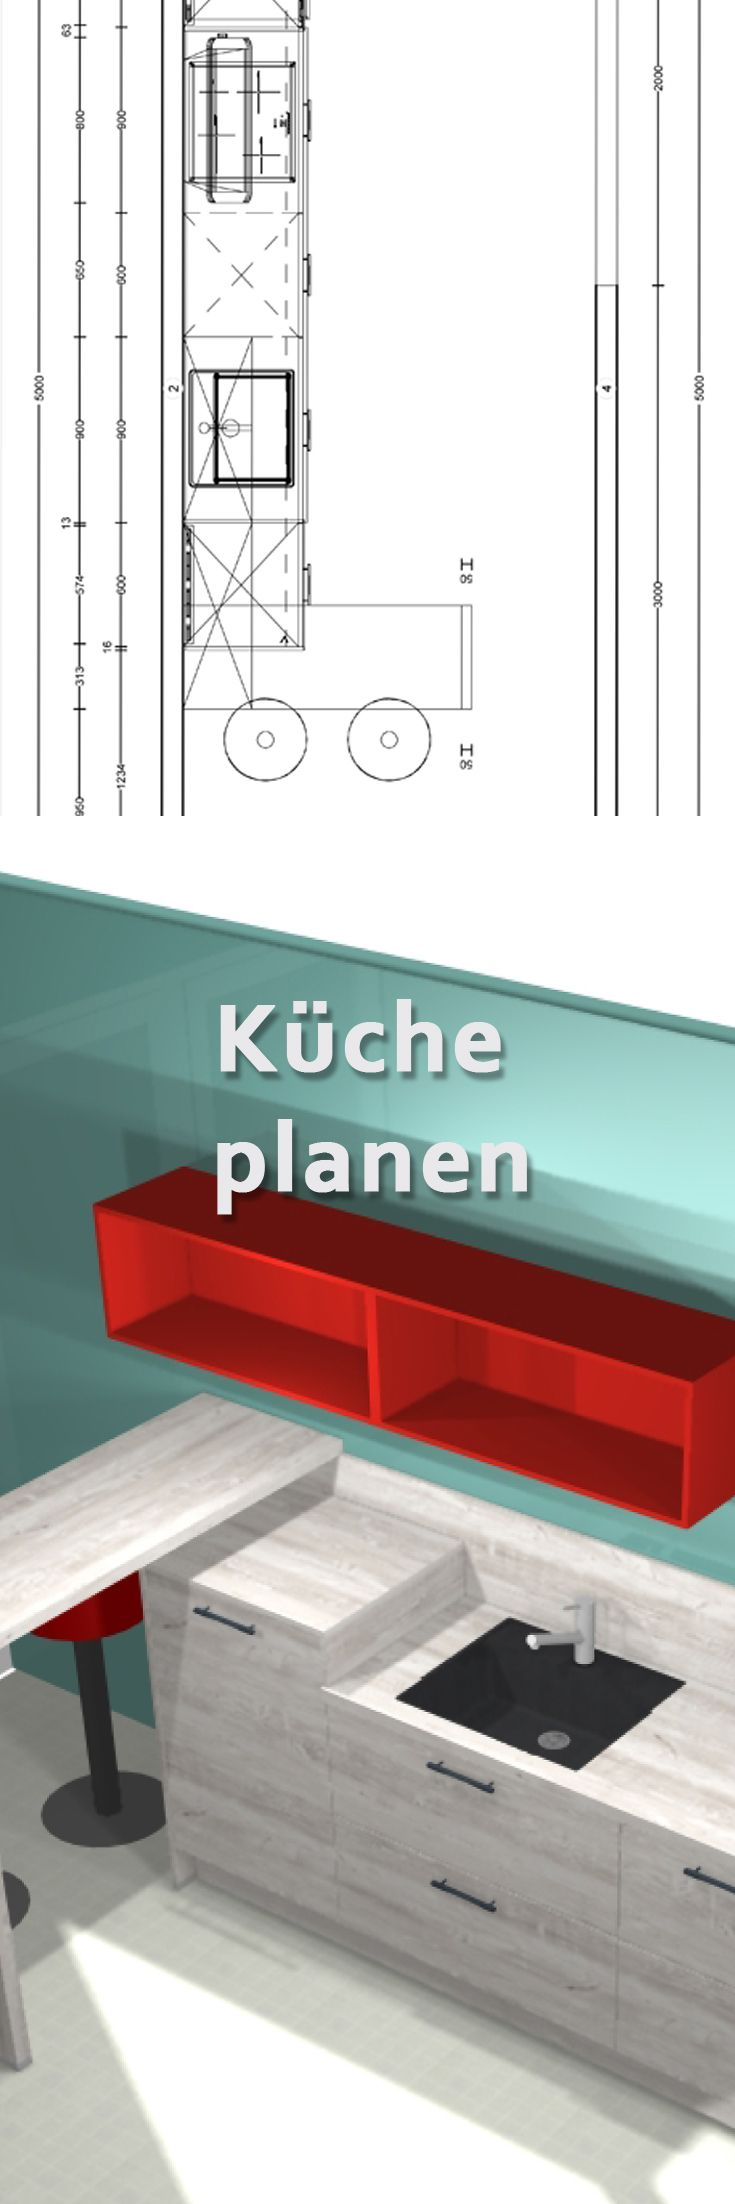 Best 25+ Küche planen ideas on Pinterest | Plan de travail ... | {Neue küche planen 33}